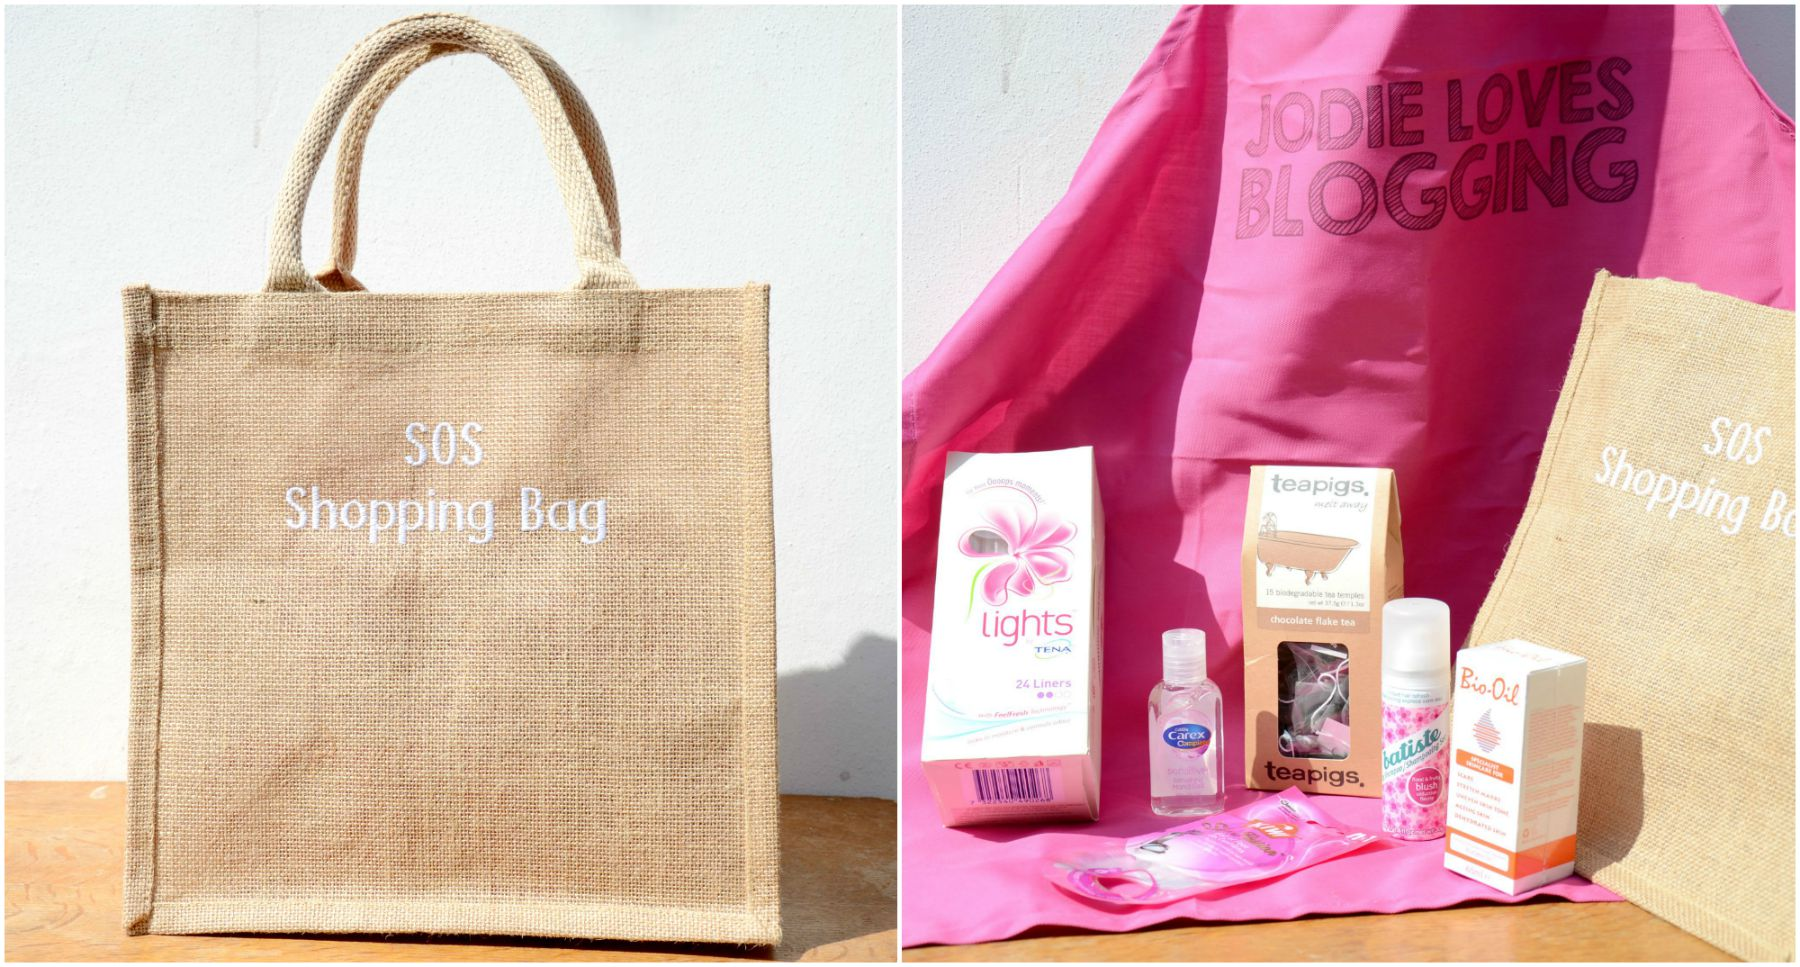 tena sos shopping bag